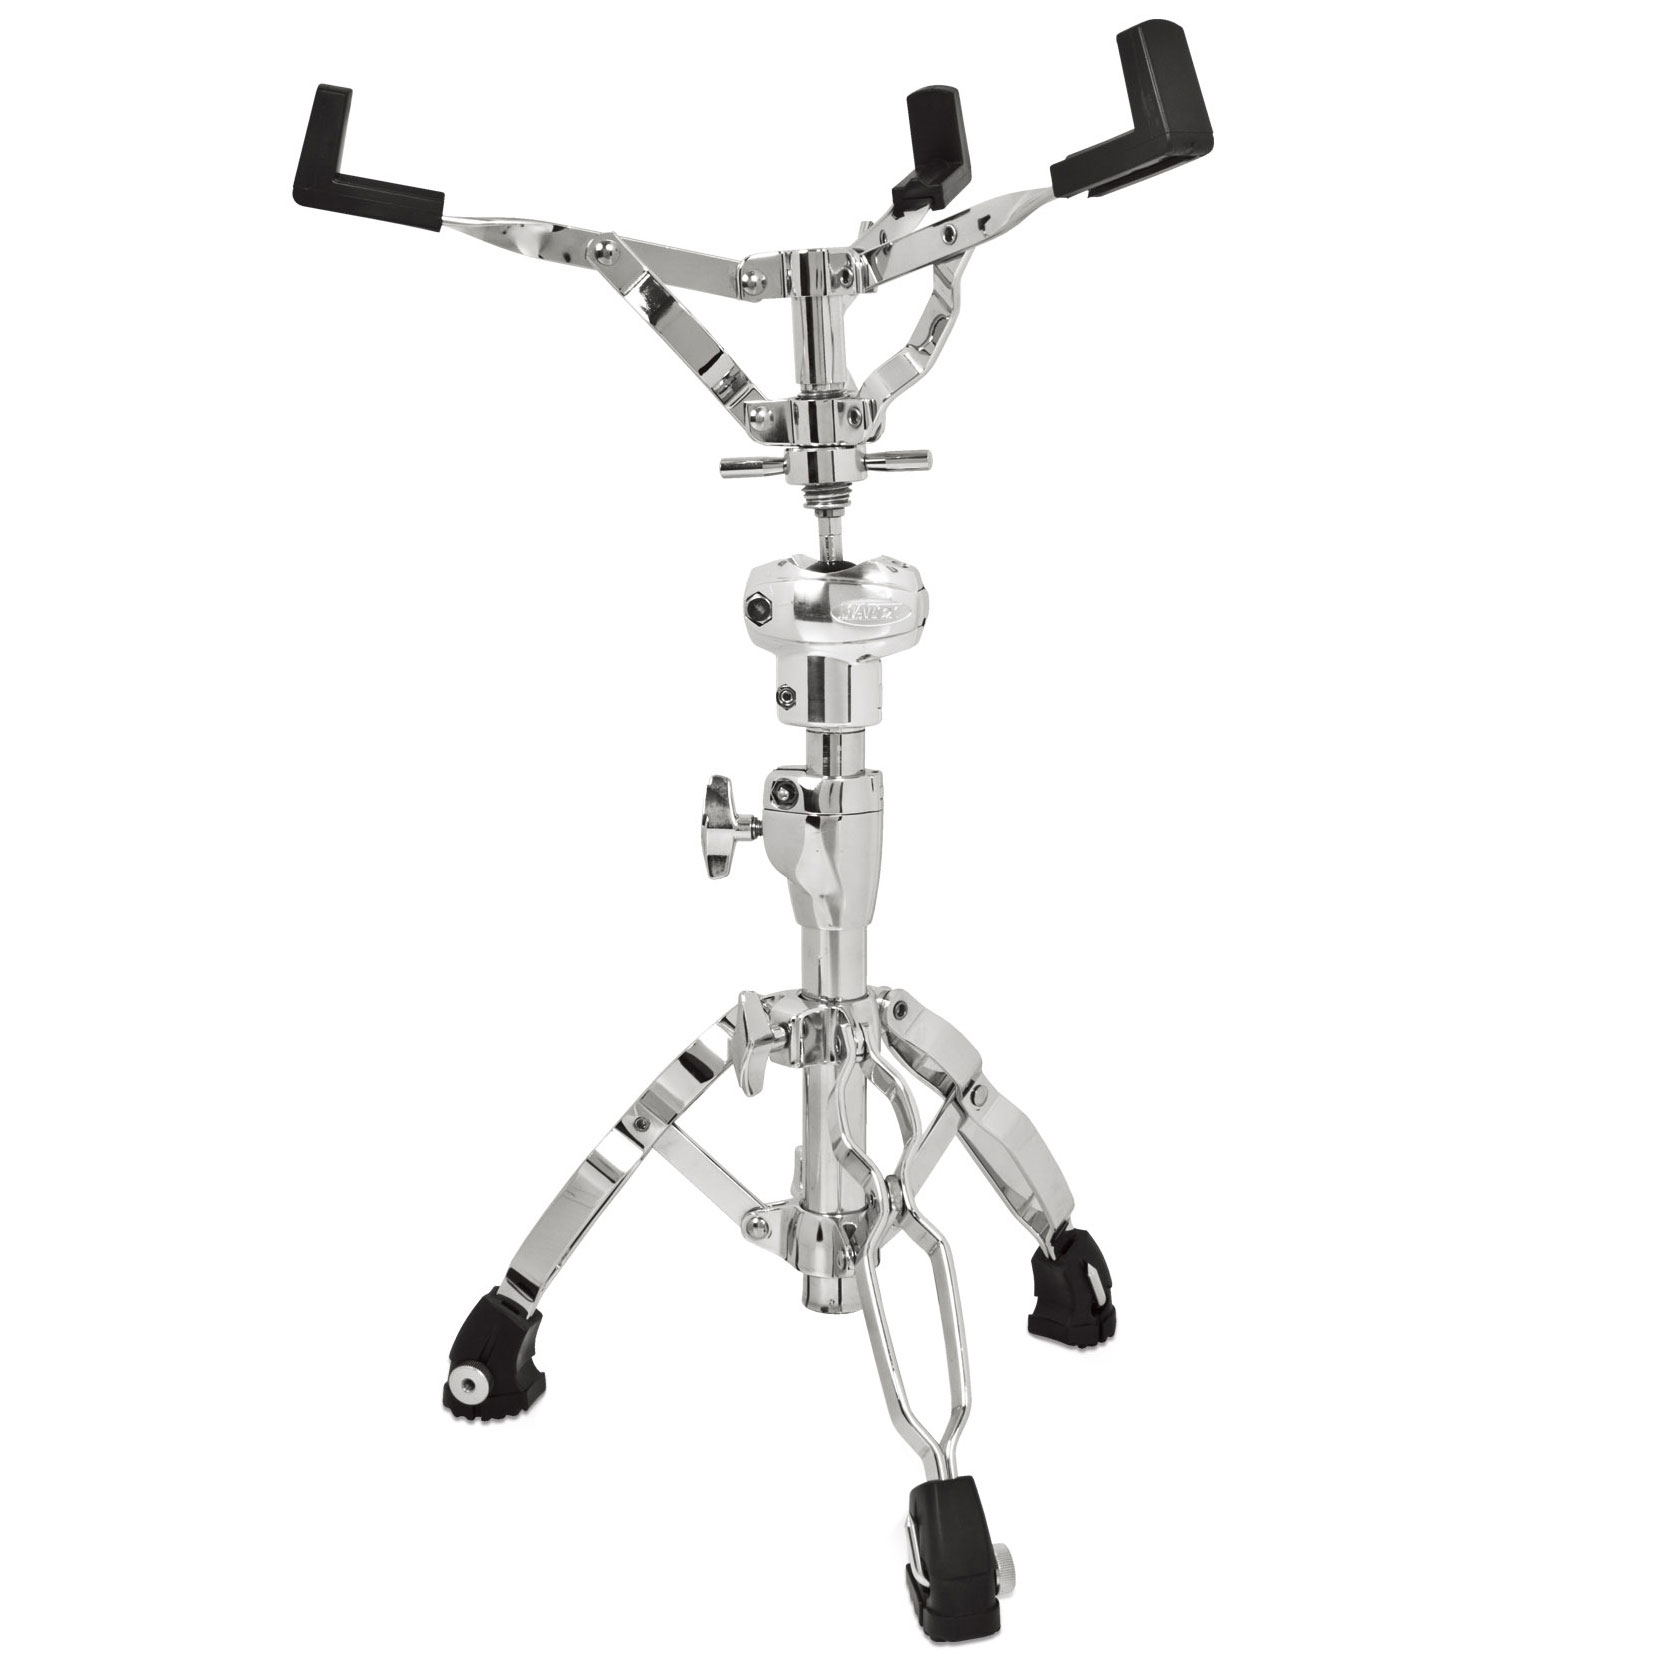 Mapex SF1000 Falcon Double Braced Snare Stand w/ In-Line Omni-Ball Adjustment